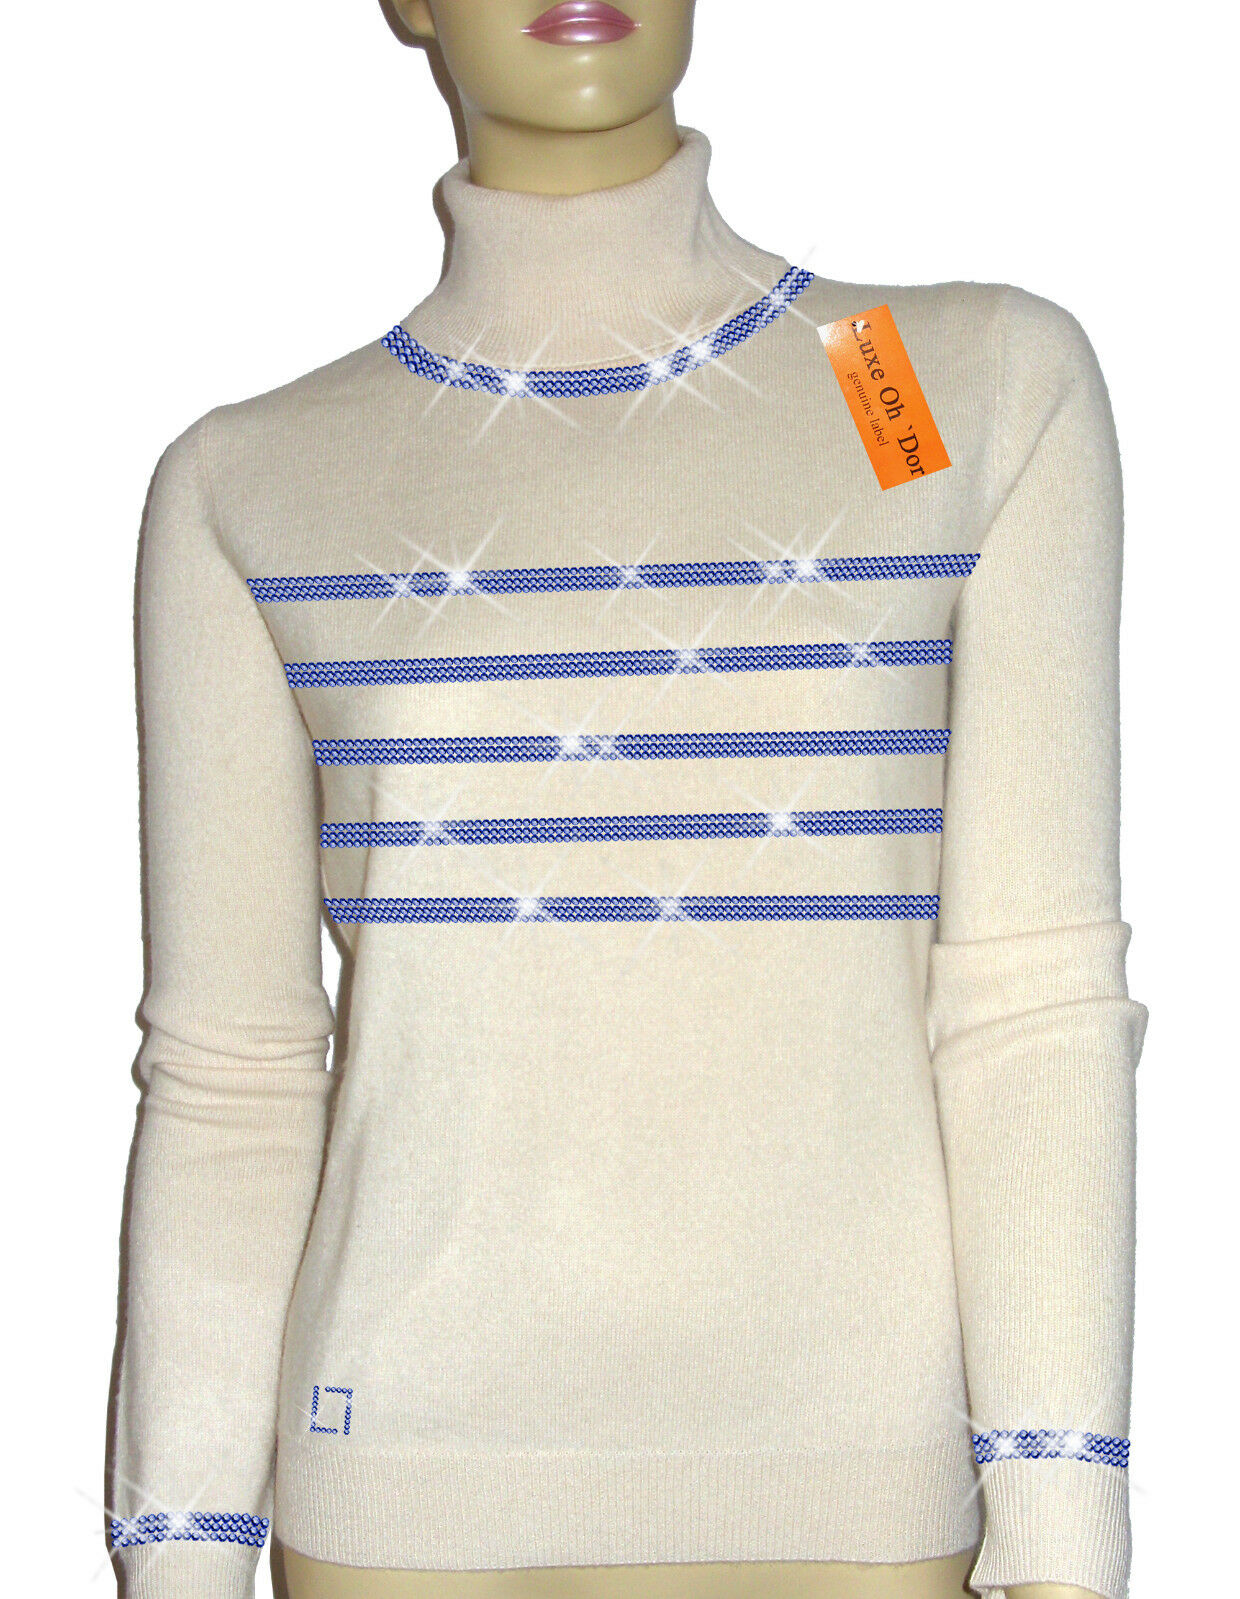 Luxe Oh` Dor 100% Cashmere Cashmere Cashmere Sweater Hamptons Lifestyle White Navy 46 48 L XL a42b27